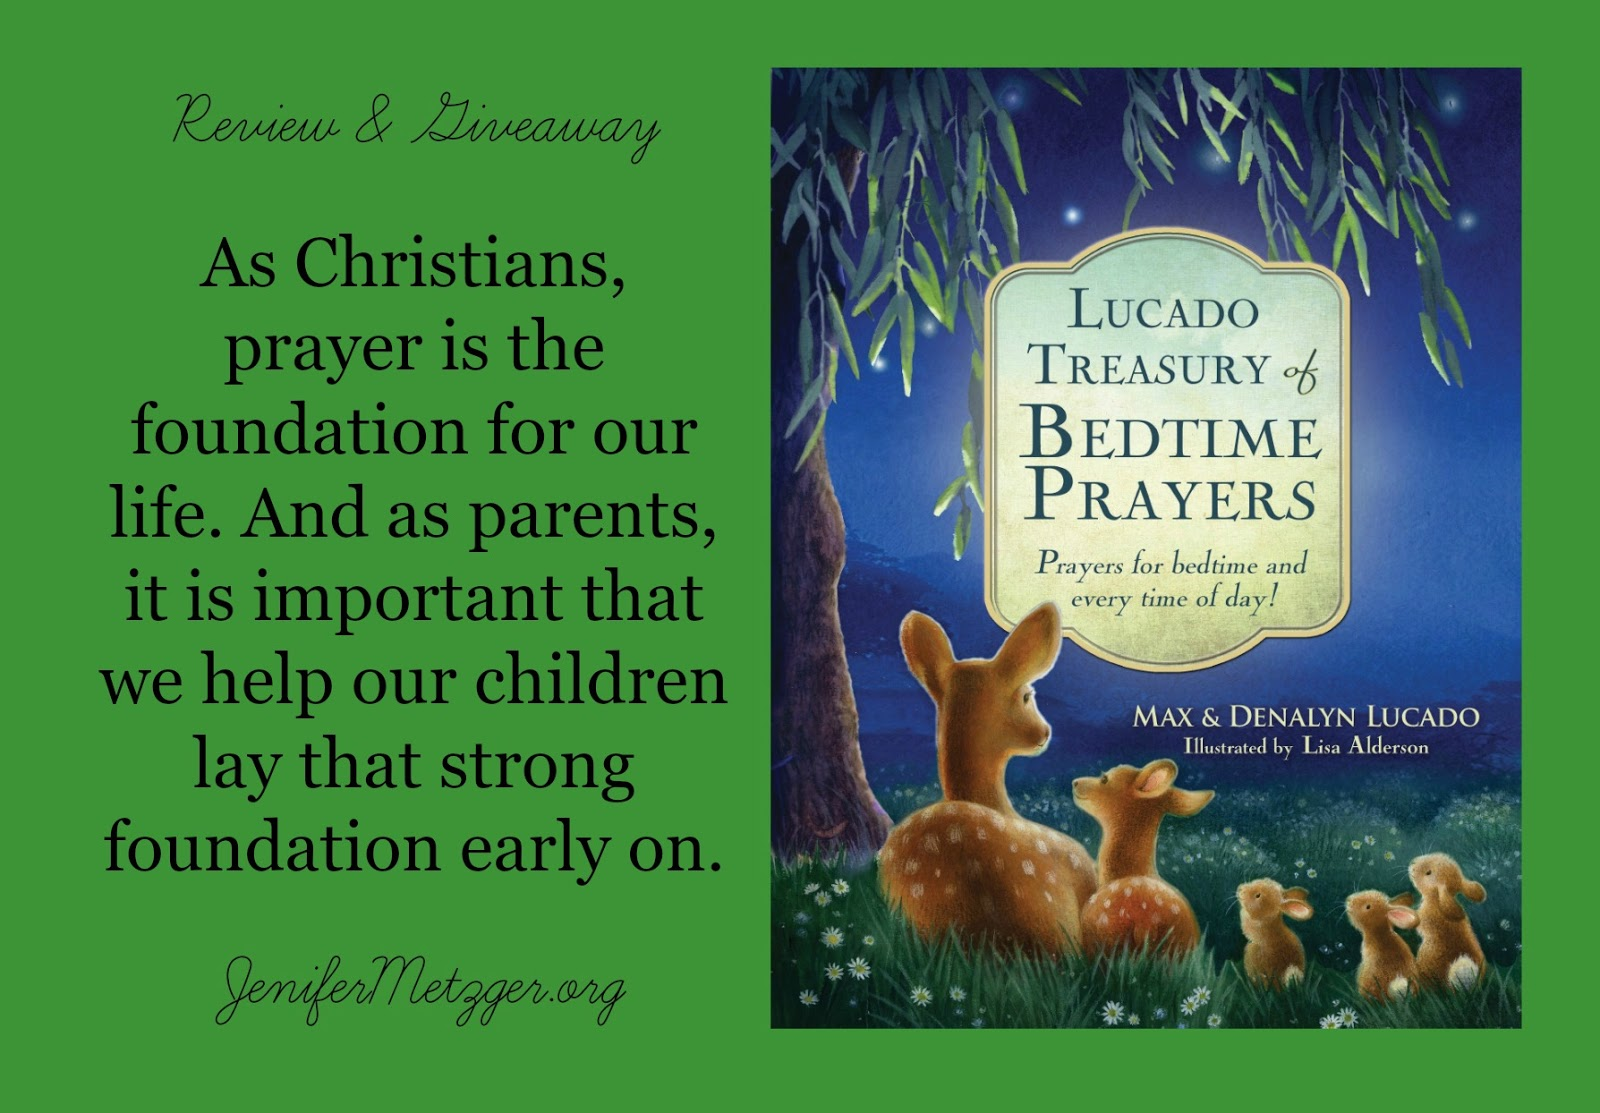 #Prayer is the foundation for life. #tommymommy #giveaway #childrensbook #parenting